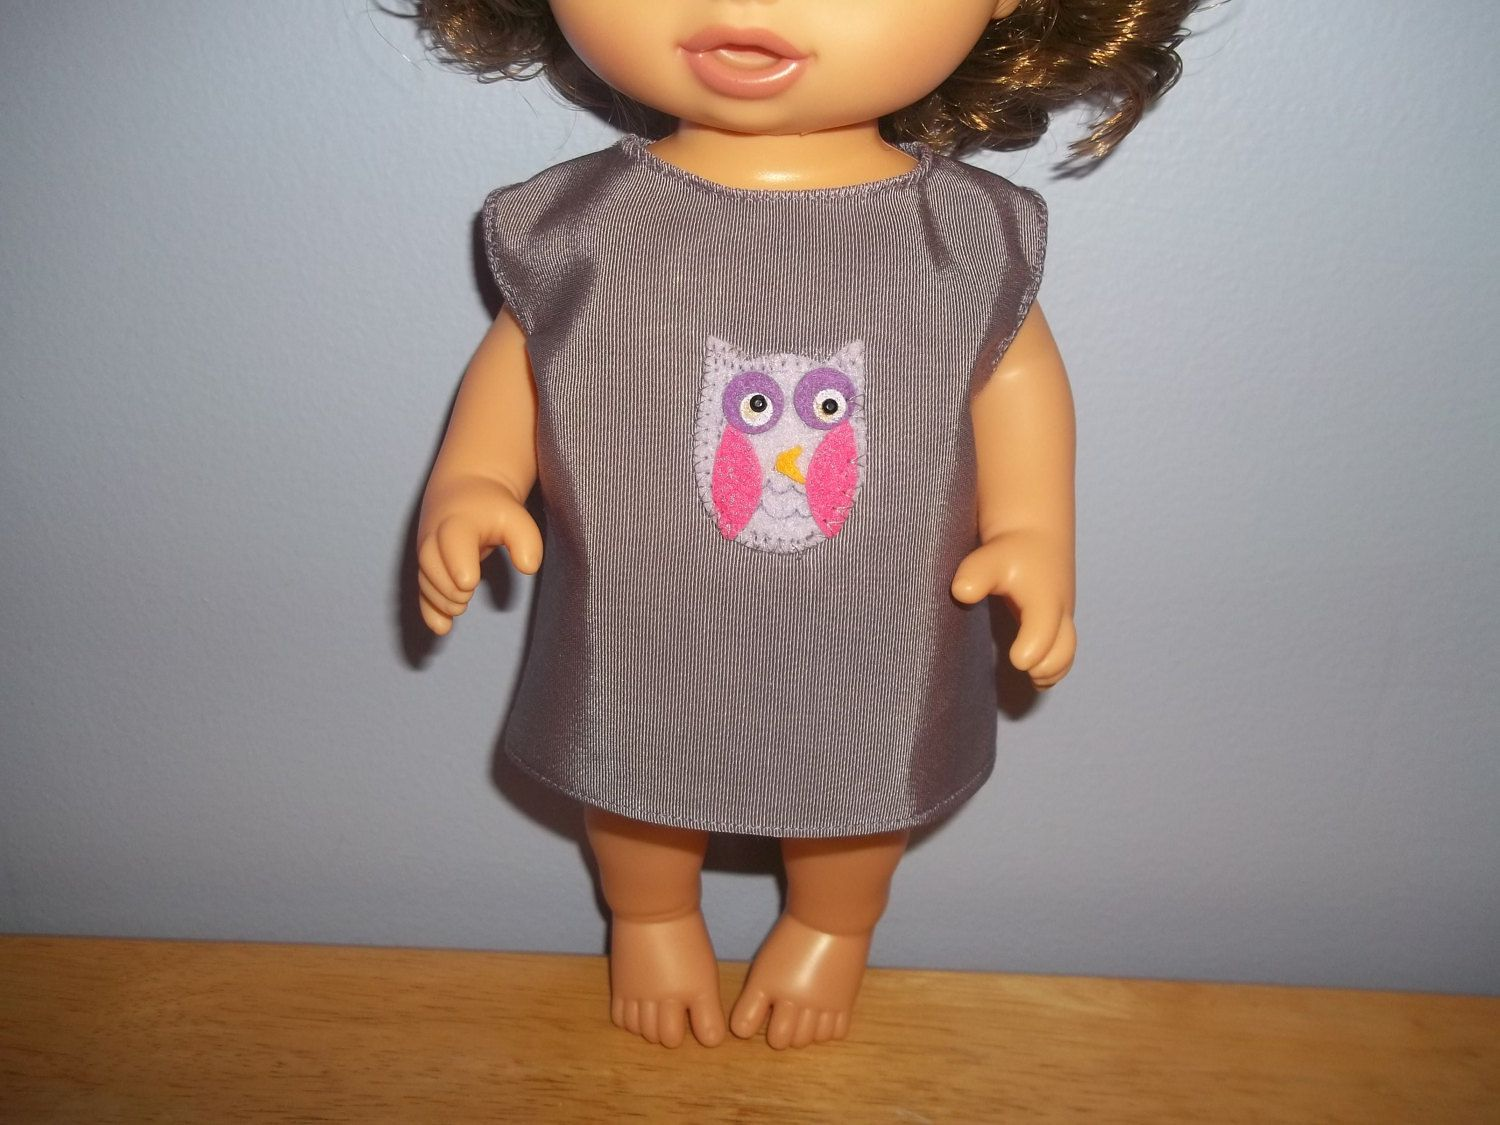 Baby 12 inch Alive doll handmade dress purple with Owl on it by sue18inchdollclothes on Etsy